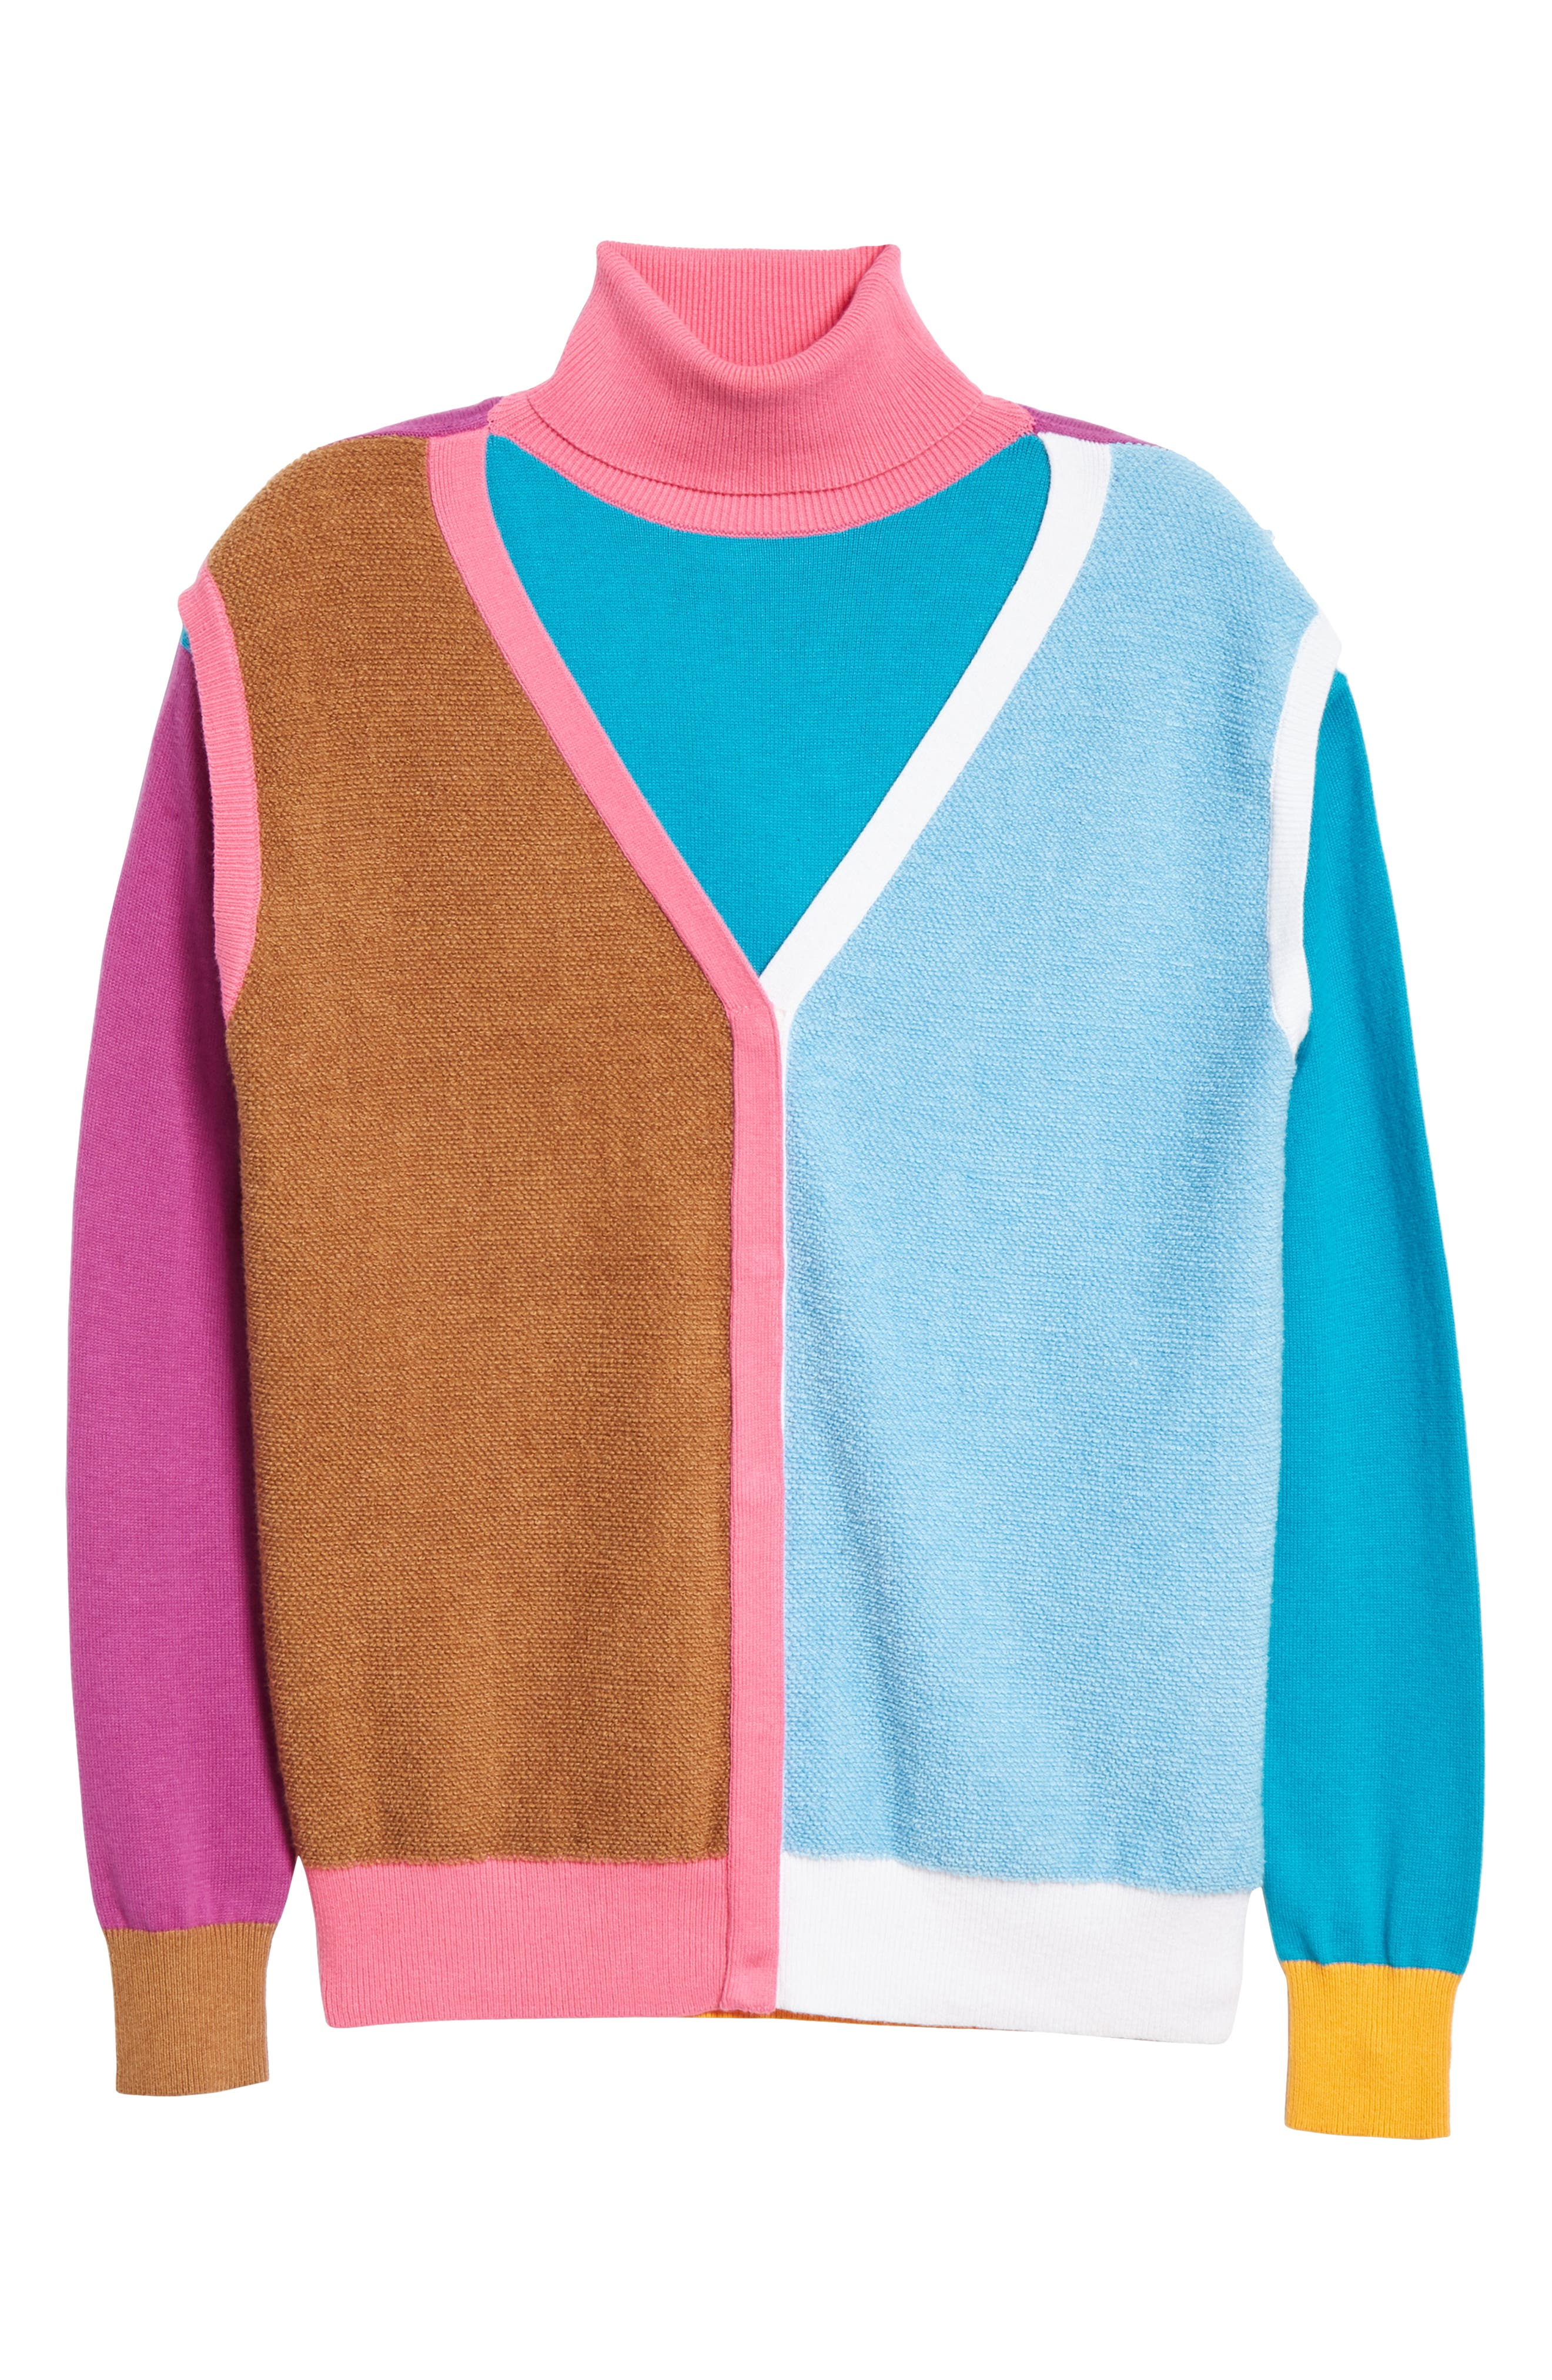 Layered Cotton & Cashmere Sweater,                             Alternate thumbnail 6, color,                             PINK/BLUE/SAND COMBO